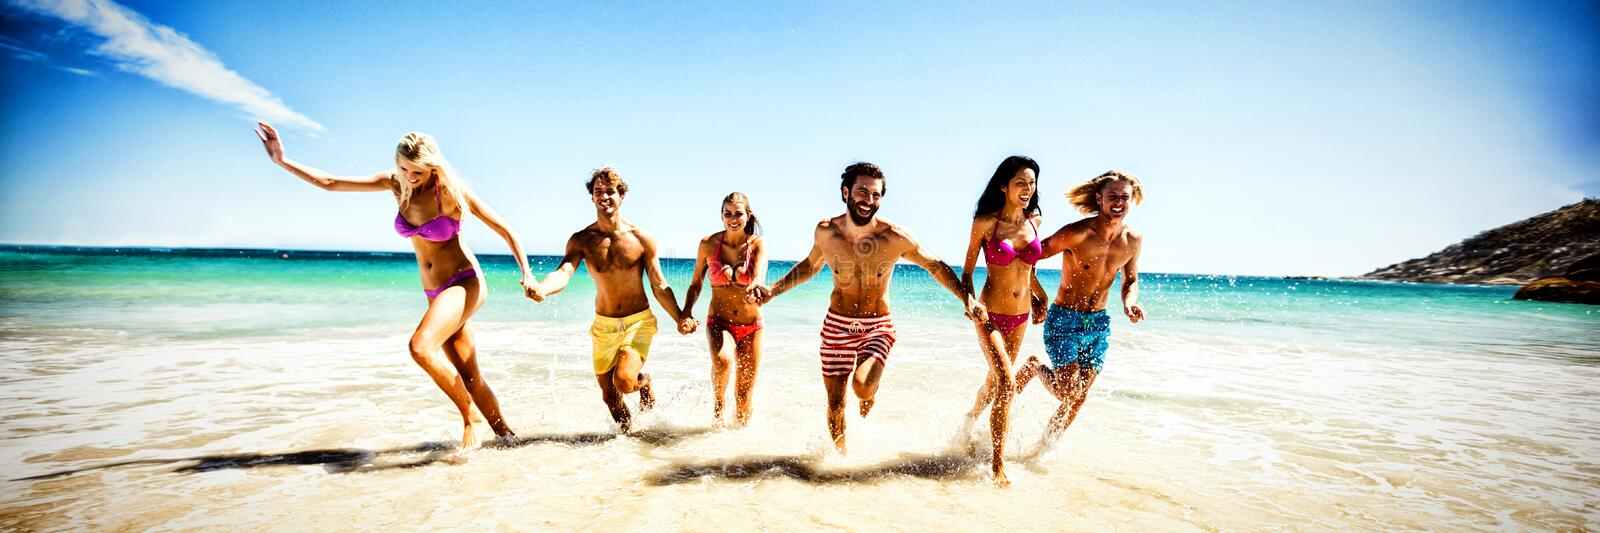 Friends having fun at the beach royalty free stock image